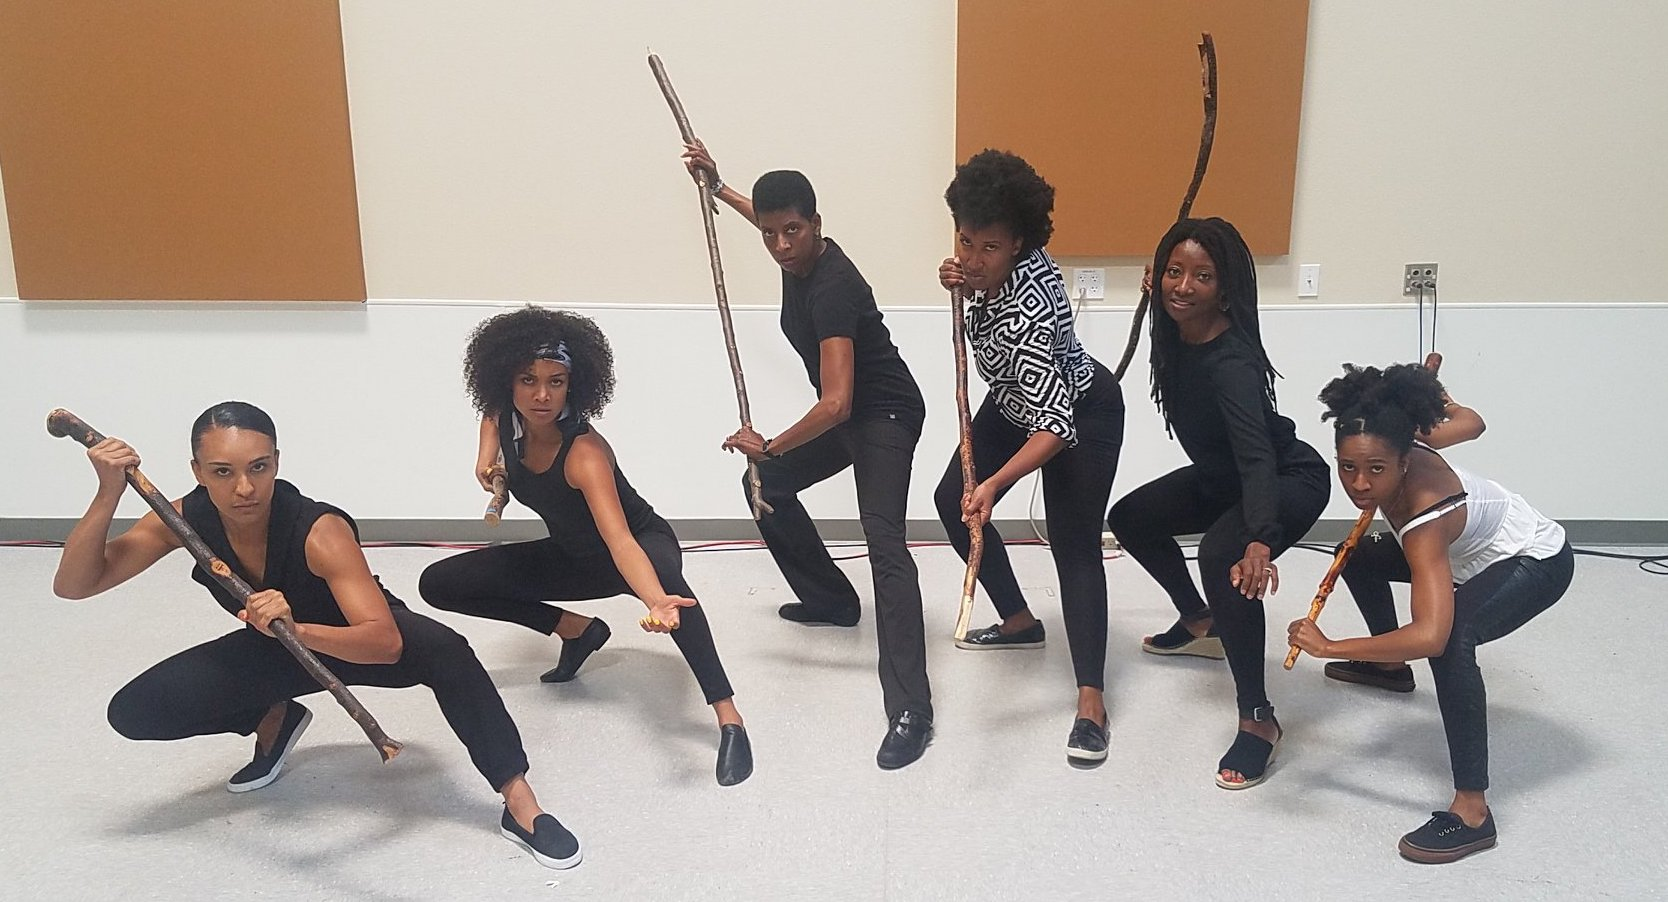 Our amazing Ground Floor Calafia actors (from L to R): Tristan Cunningham, Marissa Rudd, Velina Brown, Safiya Fredericks, Nkechi Emeruwa, Angel Adedokun.